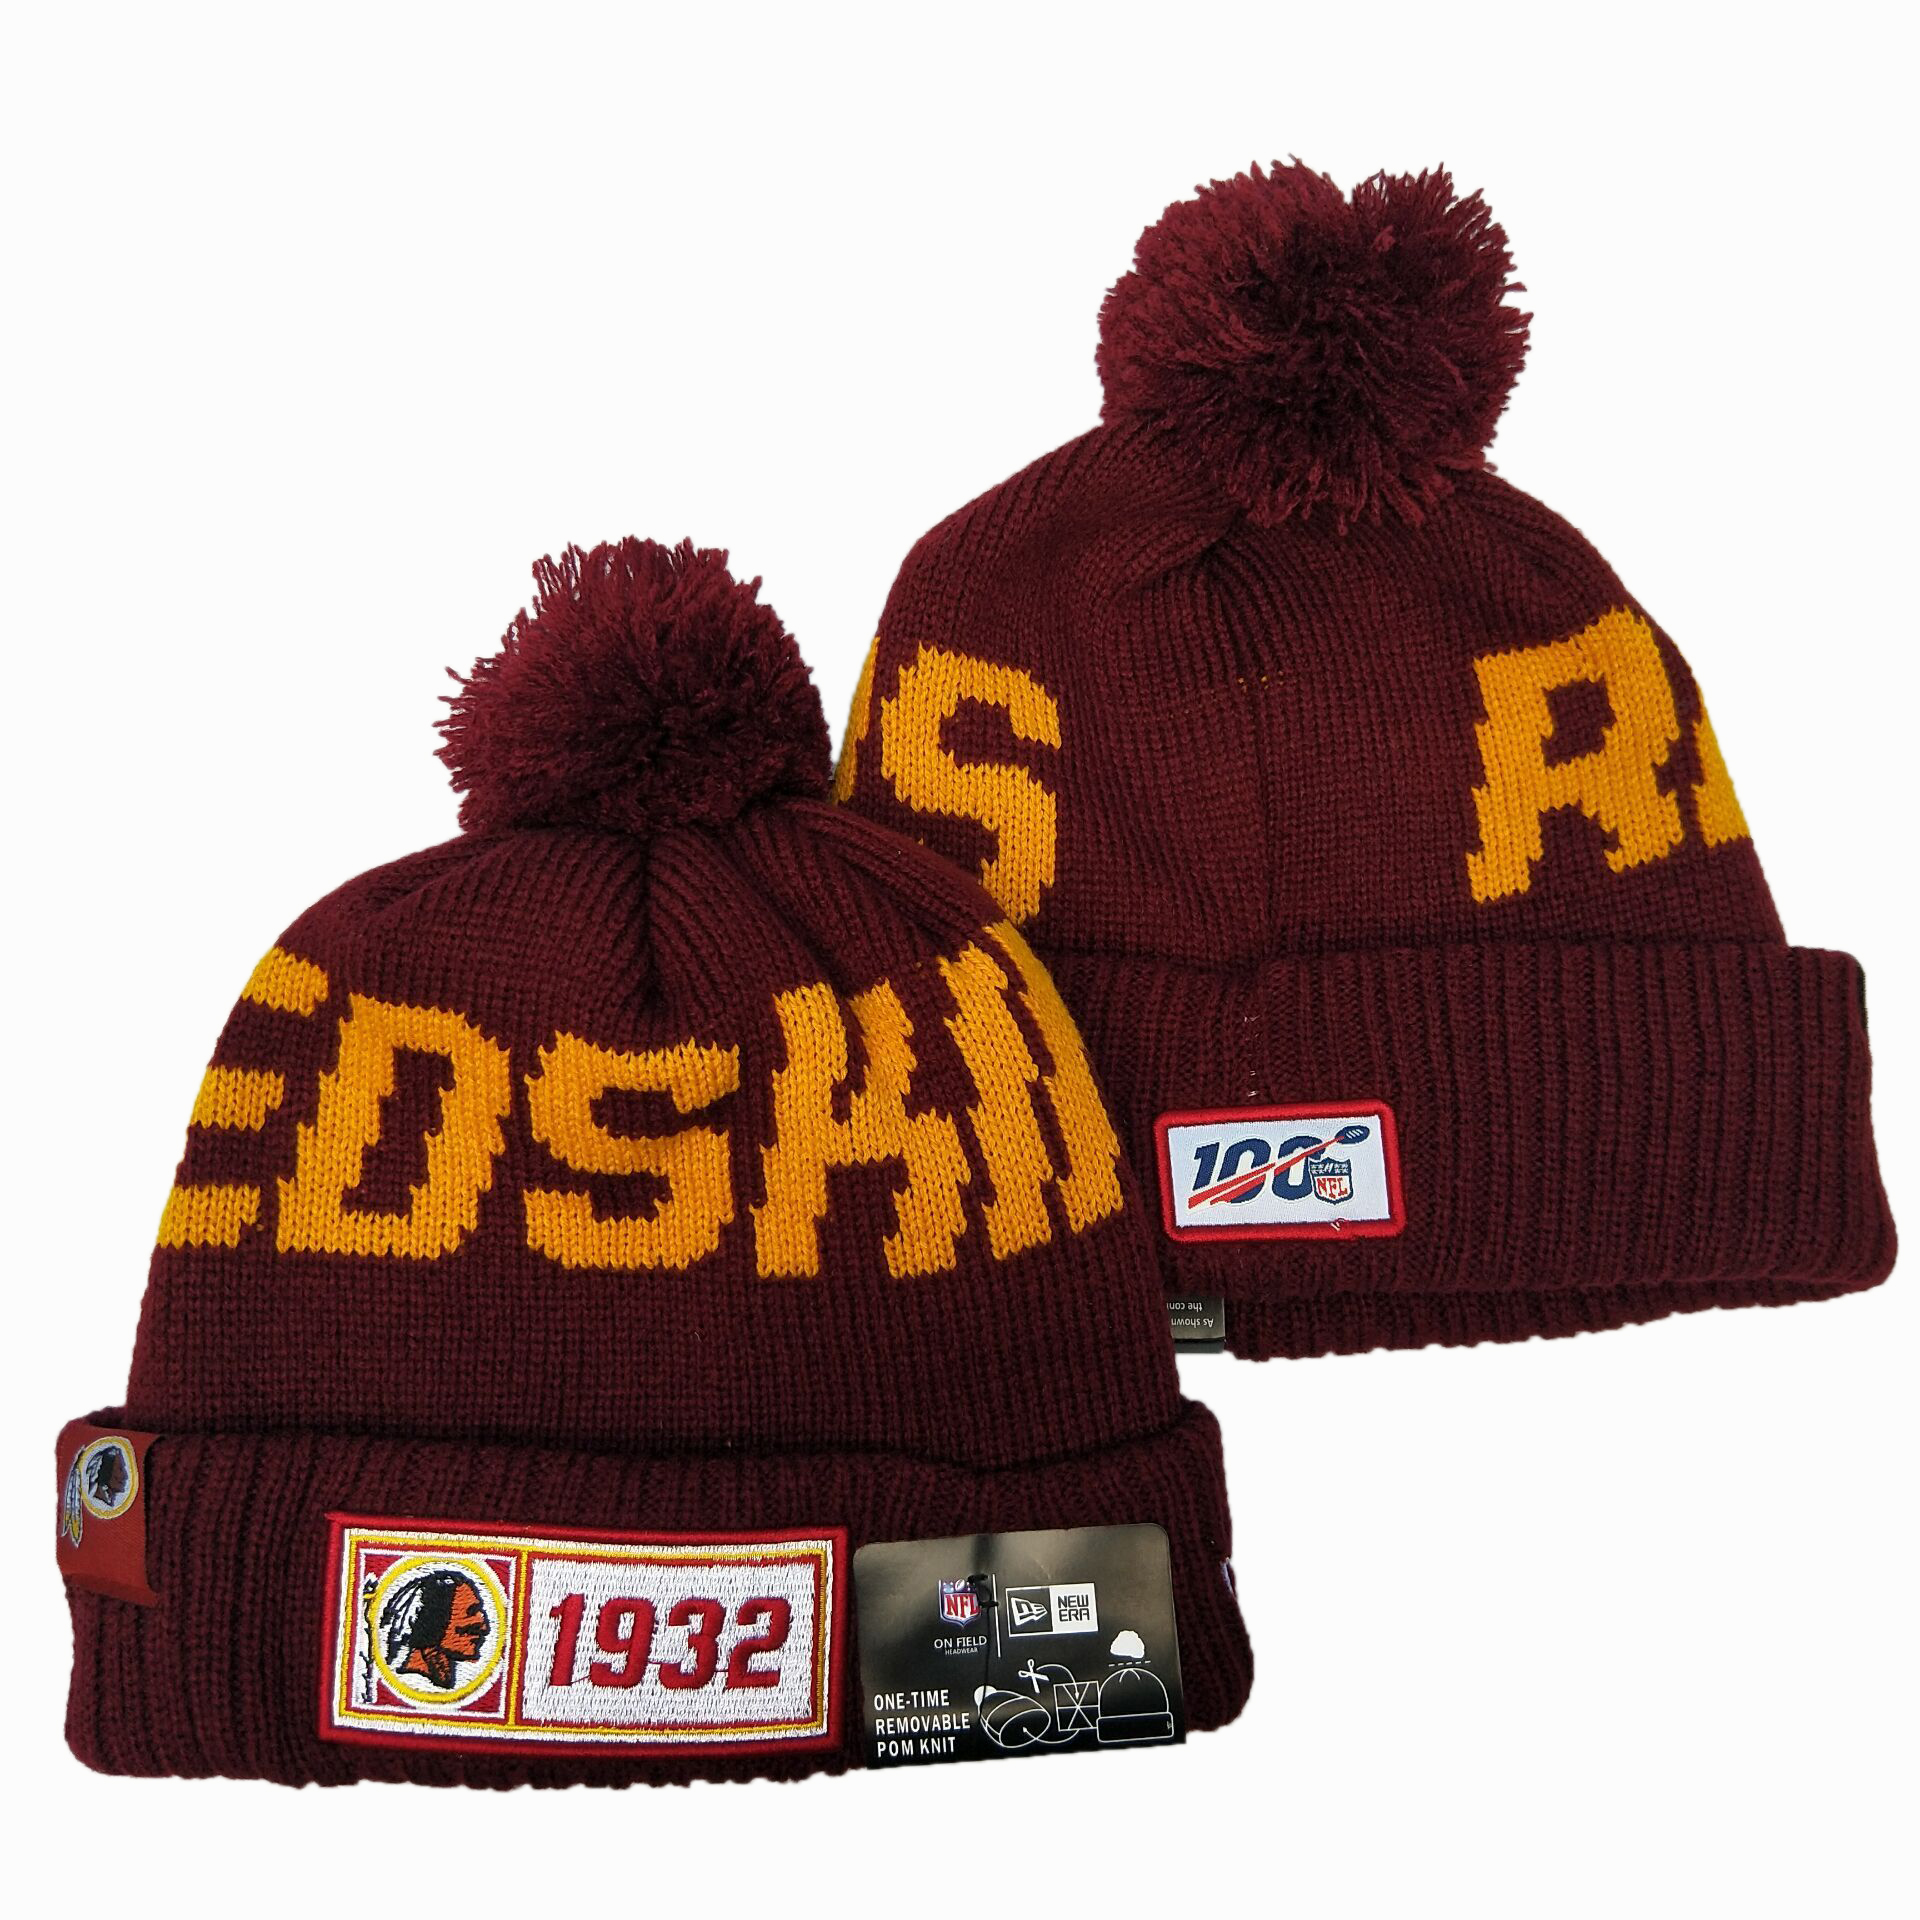 Washington Football Team Knit Hats 043